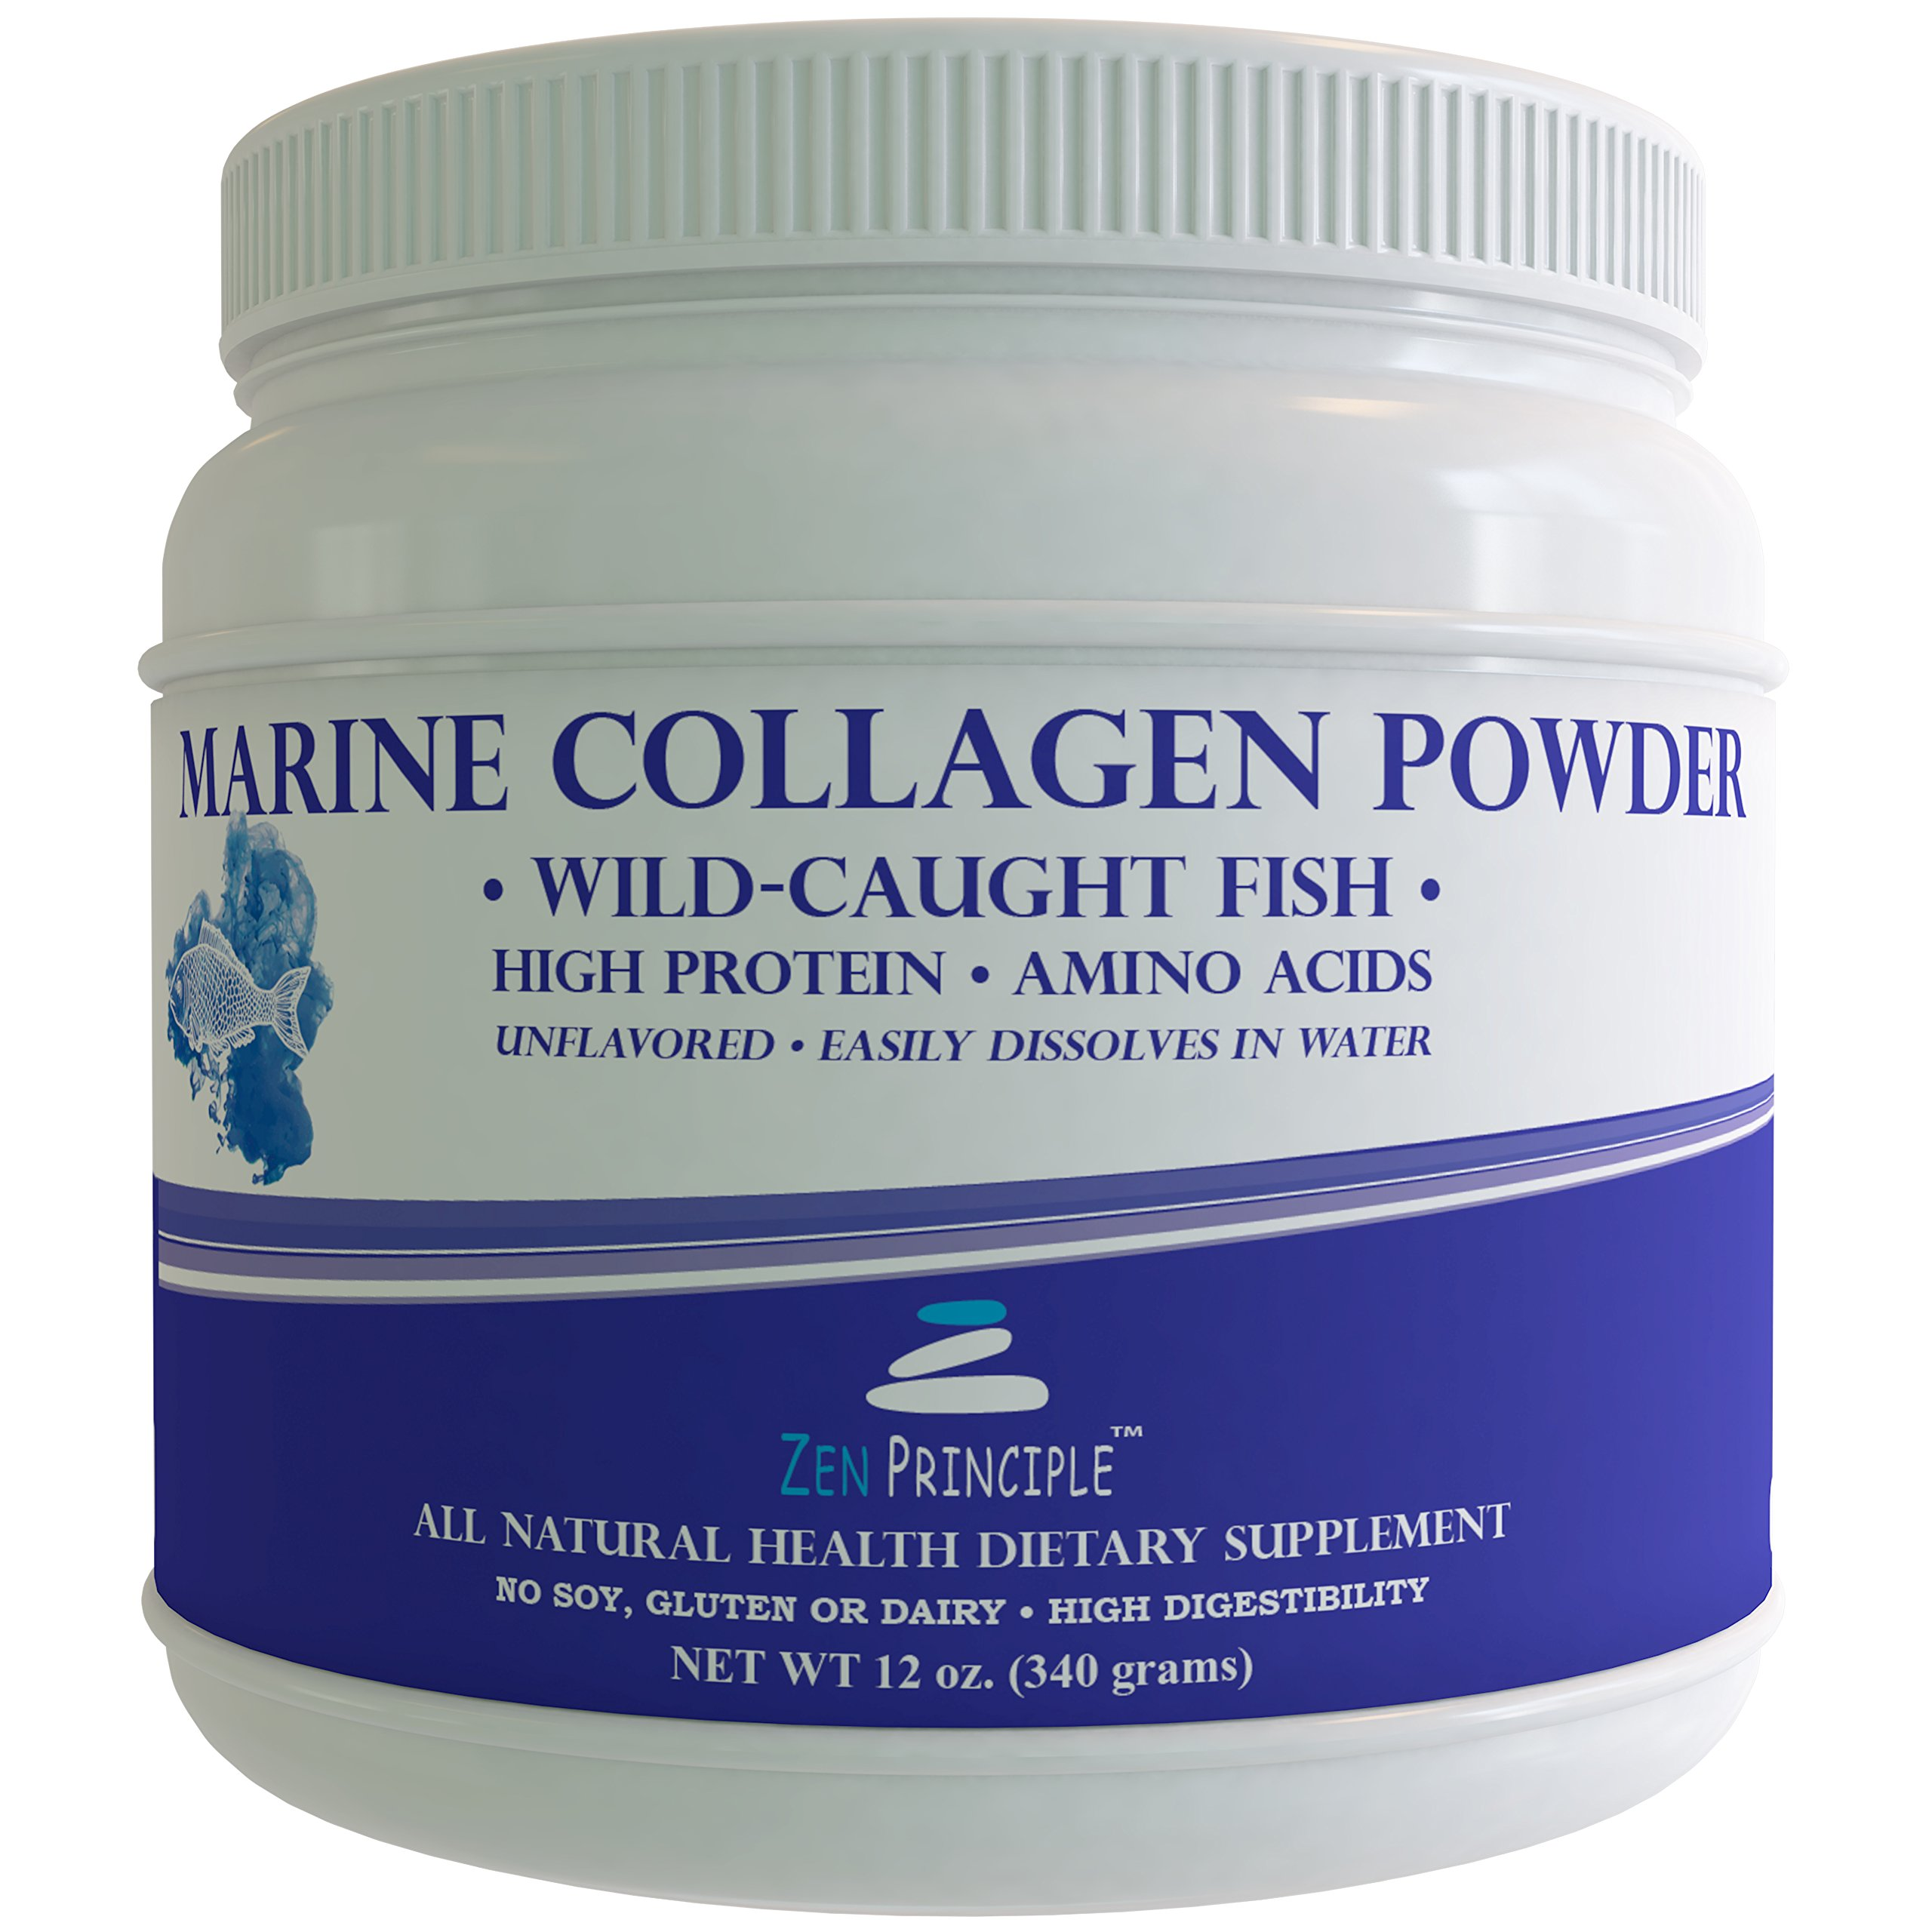 LARGE 12 Oz. Marine Collagen Peptide Powder. Wild-Caught Fish, Non-GMO. Supports Healthy Skin, Hair, Joints and Bones. Hydrolyzed Type 1 & 3 Protein. Amino Acids, Unflavored, Easy to Mix. FREE scoop!